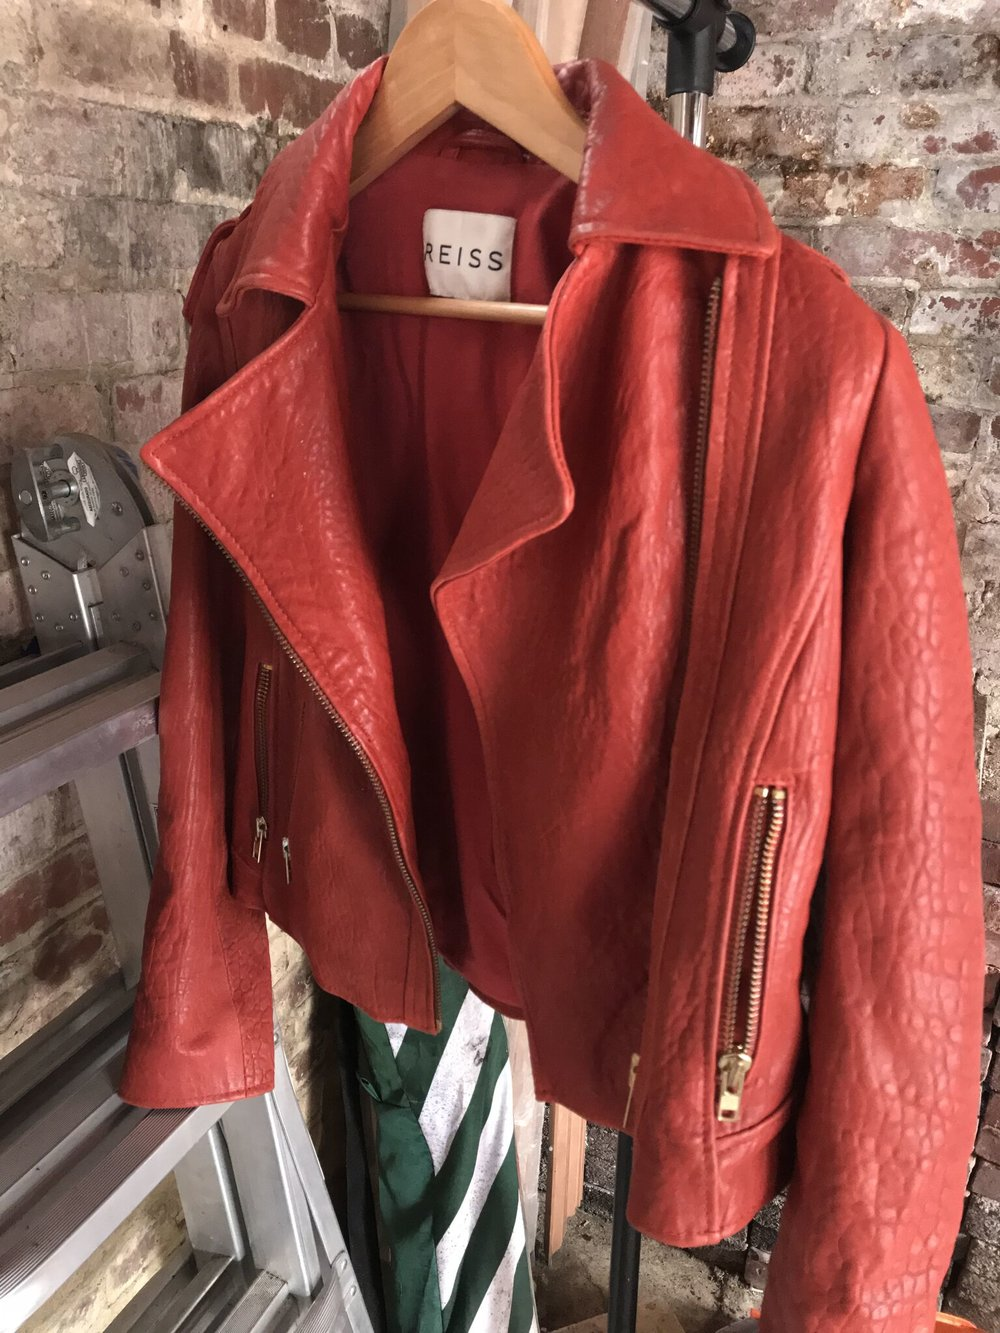 red reiss jacket.jpeg